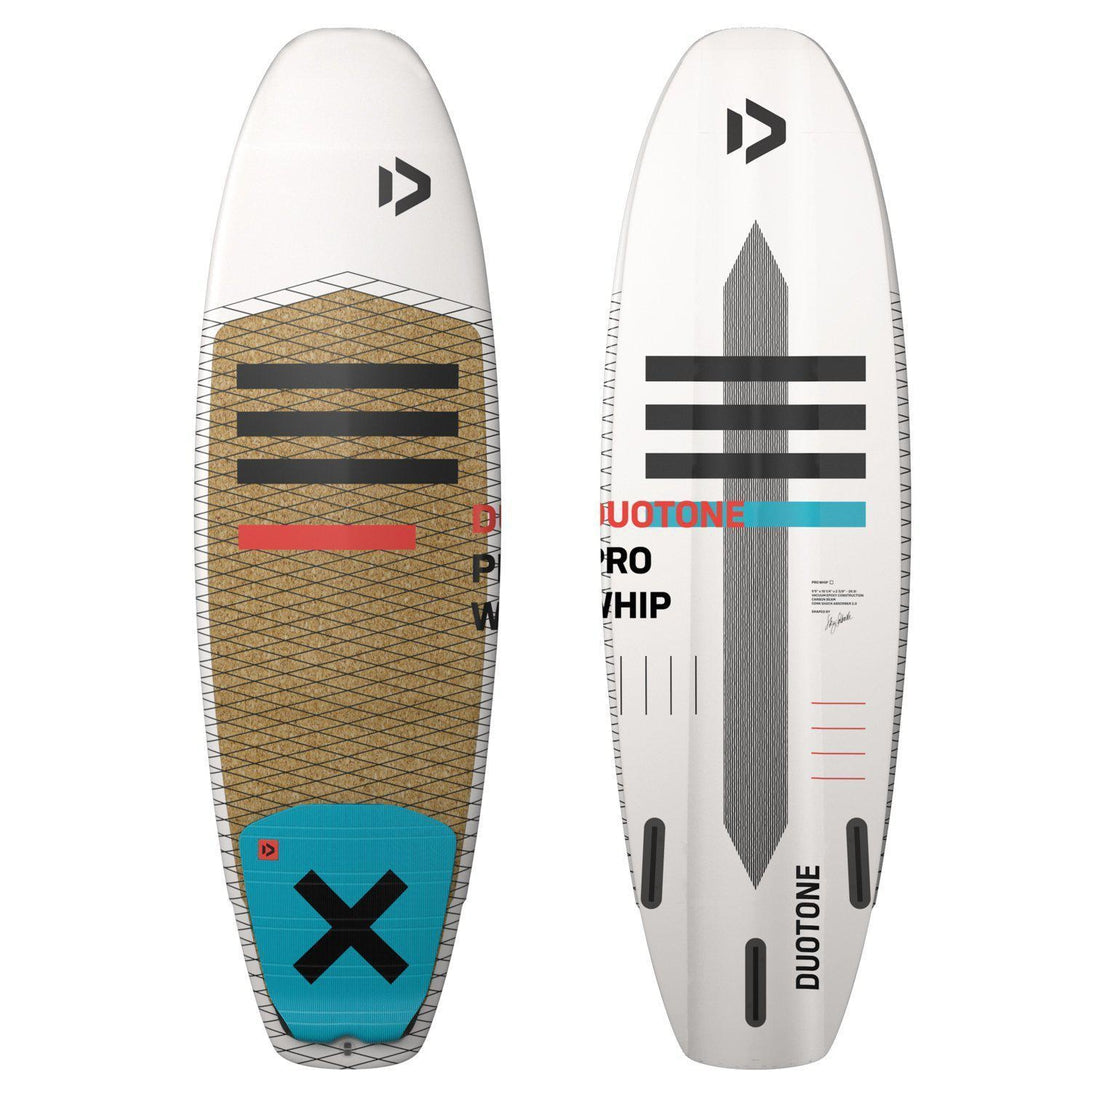 2020 Duotone PRO WHIP Strapless Kite Surfboard-Big Winds